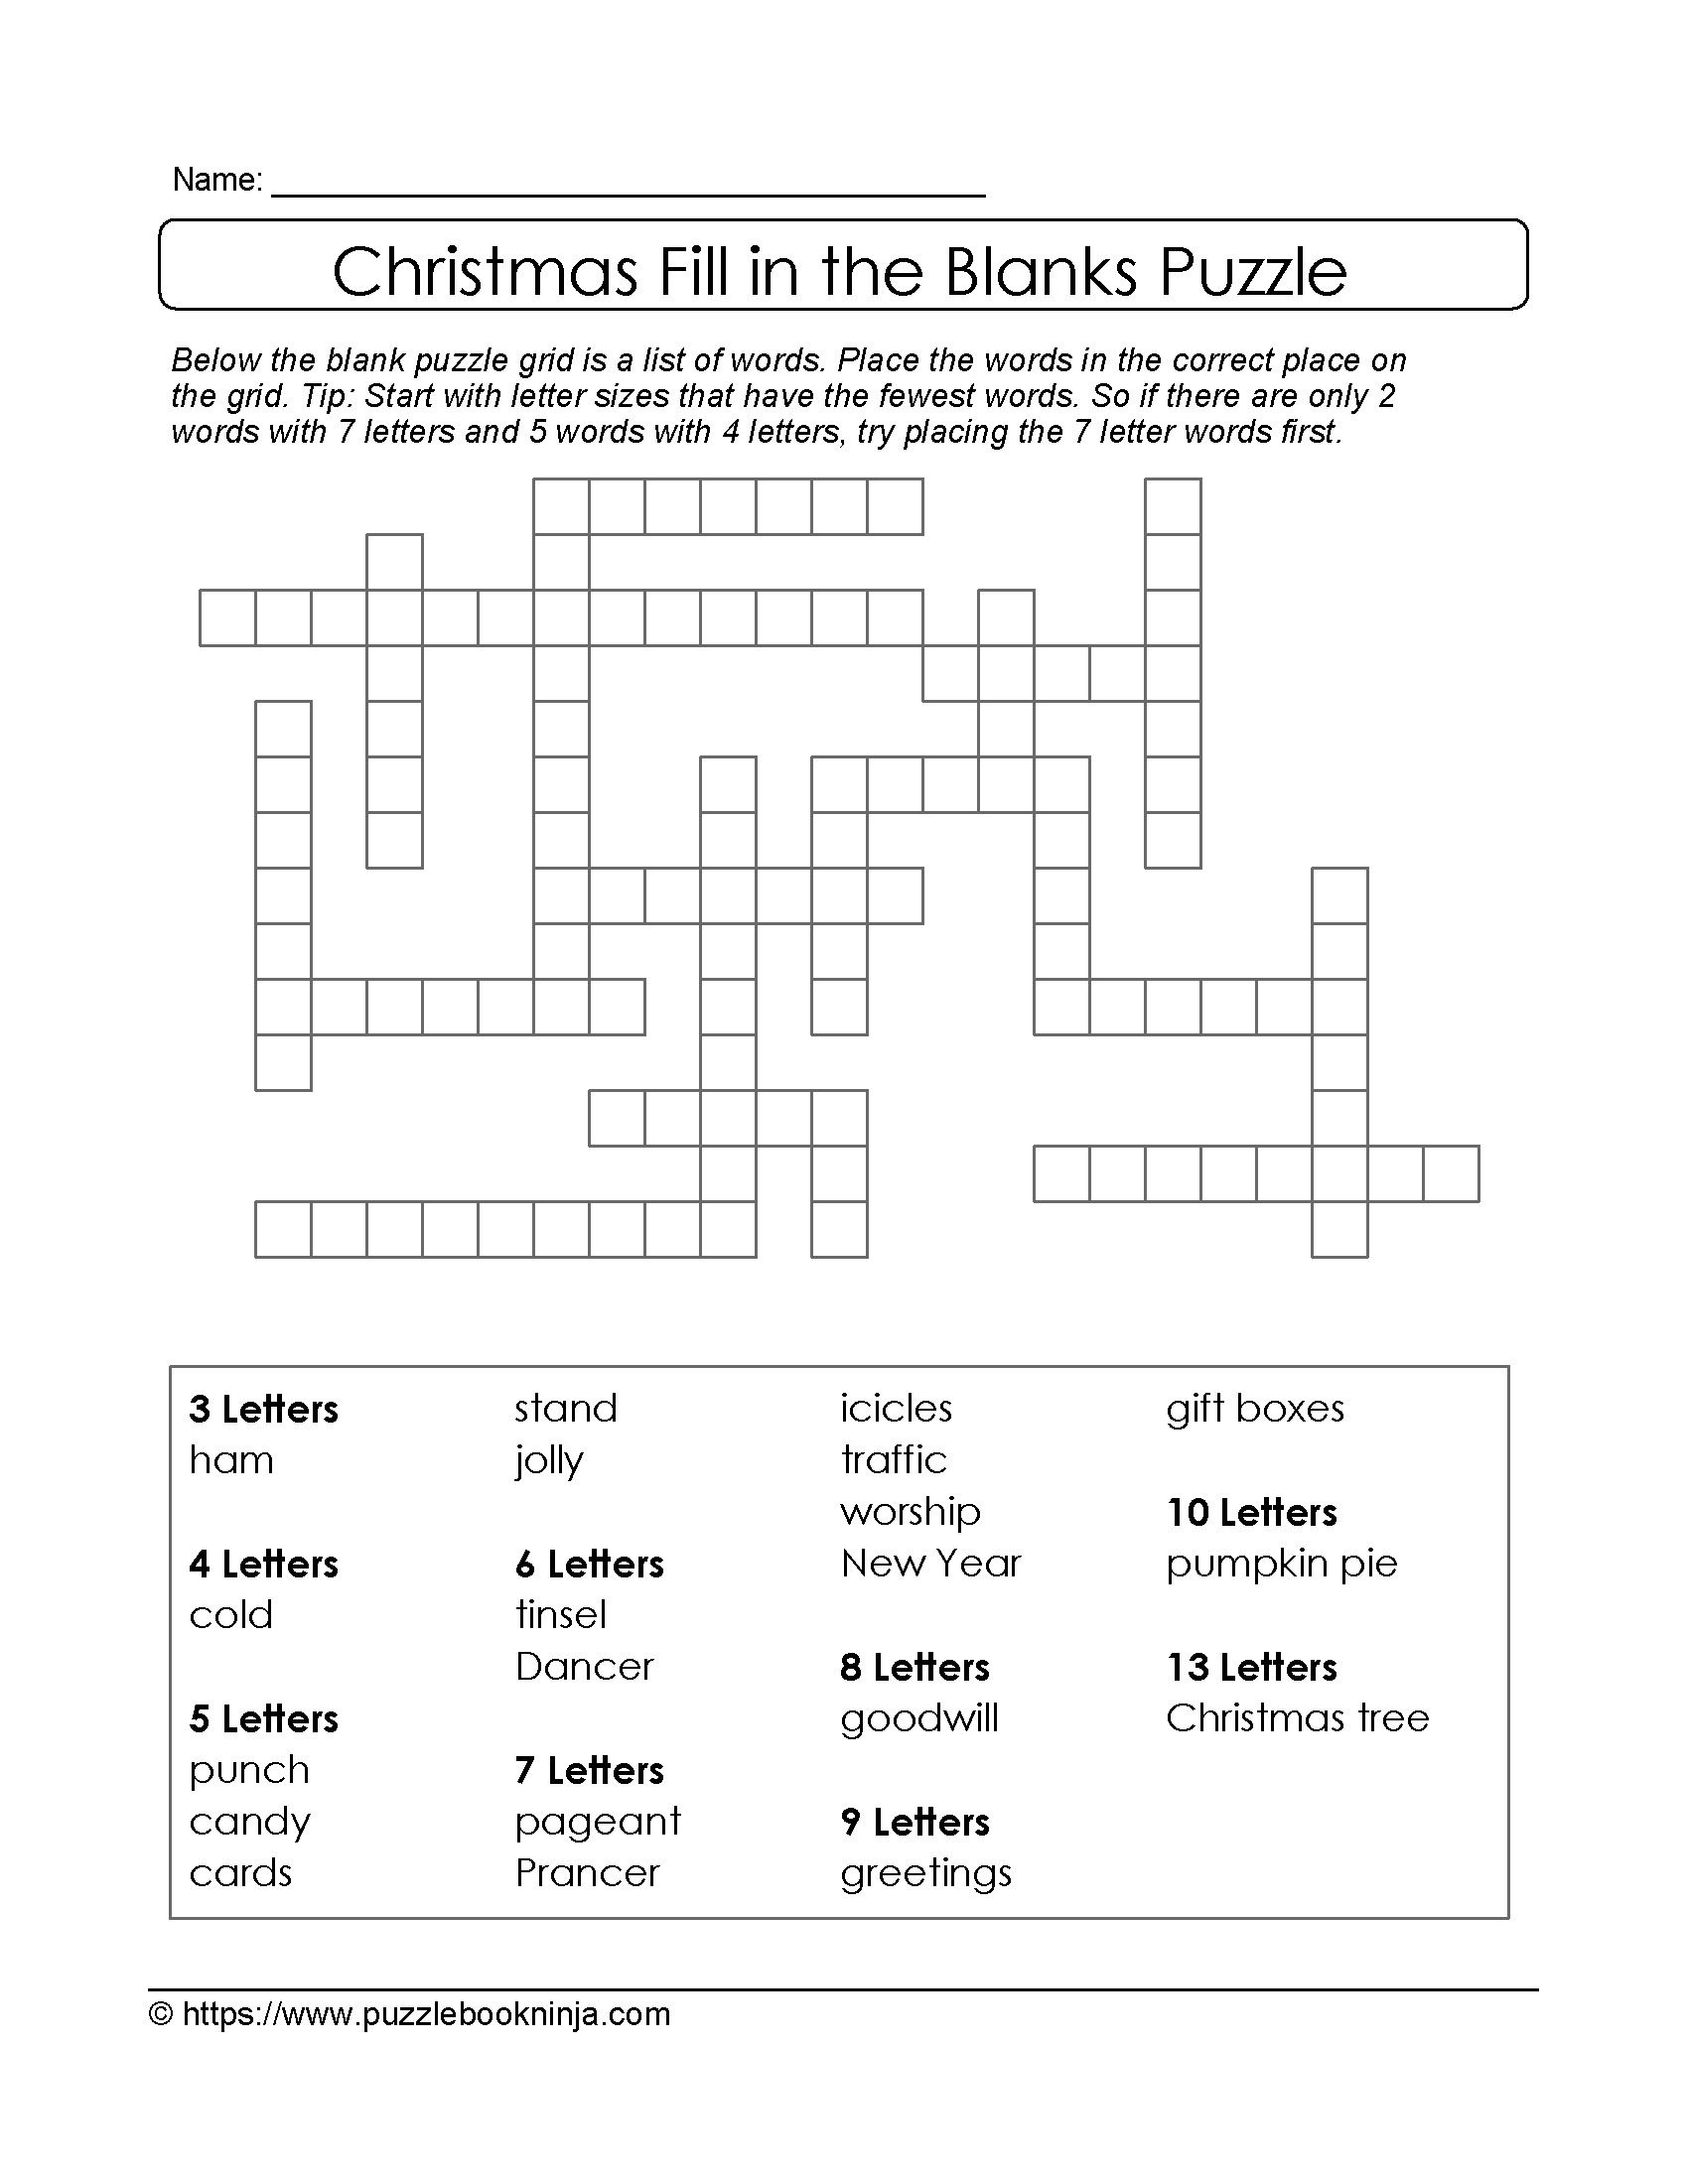 Freebie Xmas Puzzle To Print. Fill In The Blanks Crossword Like - Printable Battleships Puzzle